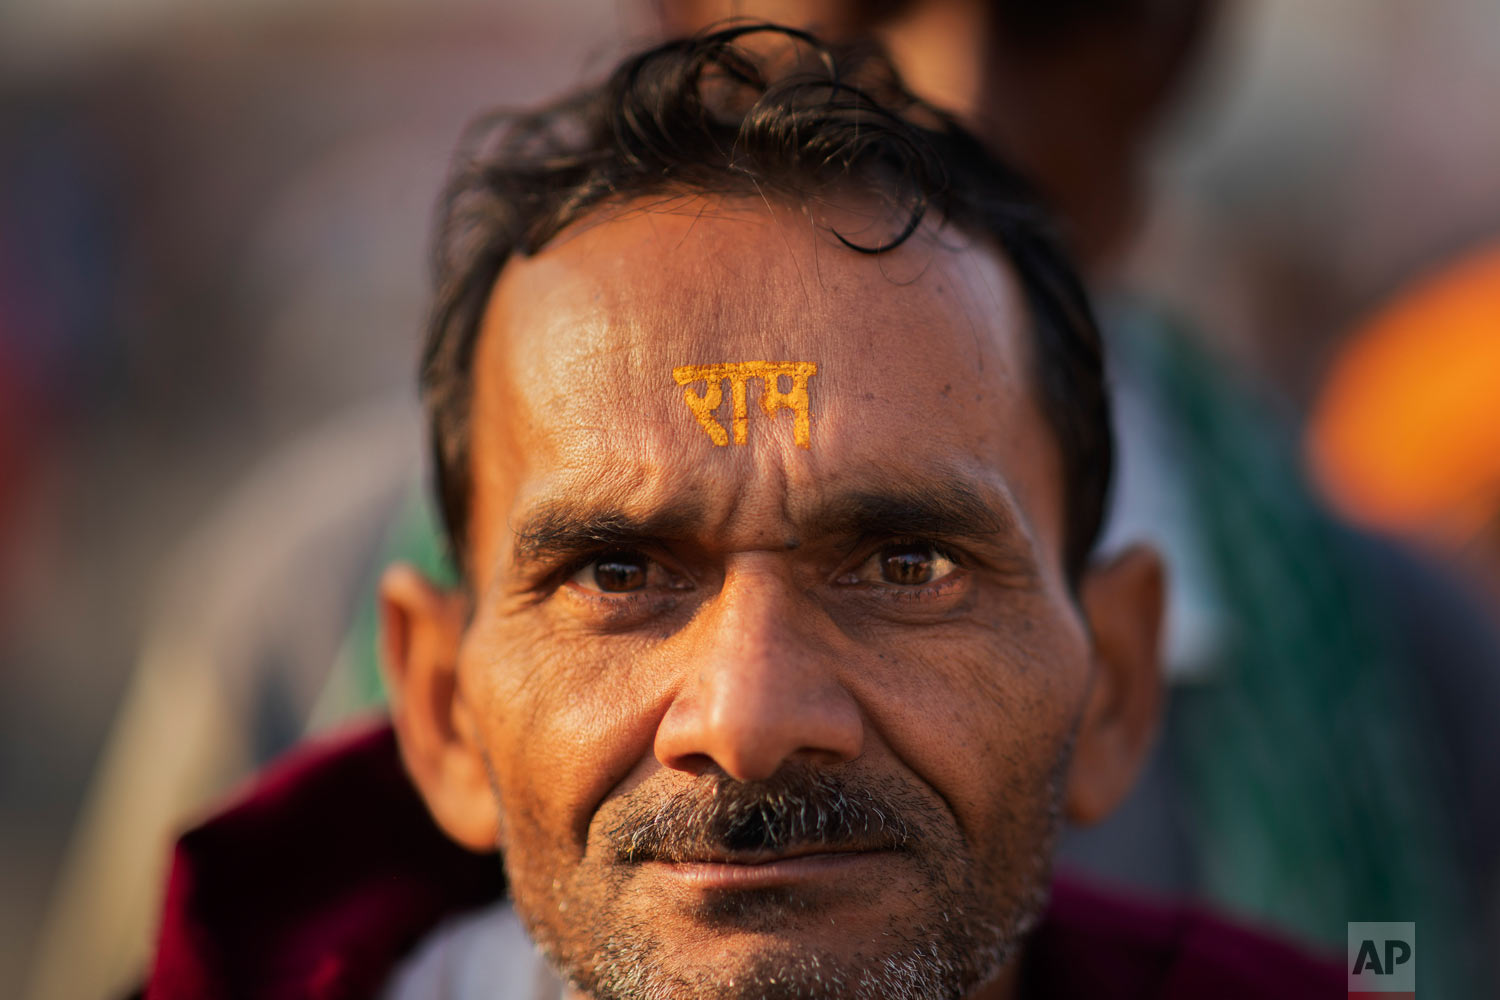 A Hindu hardline supporter wears the the name of the god Ram written on his forehead in Ayodhya, Uttar Pradesh, India, Nov. 25, 2018. (AP Photo/Bernat Armangue)